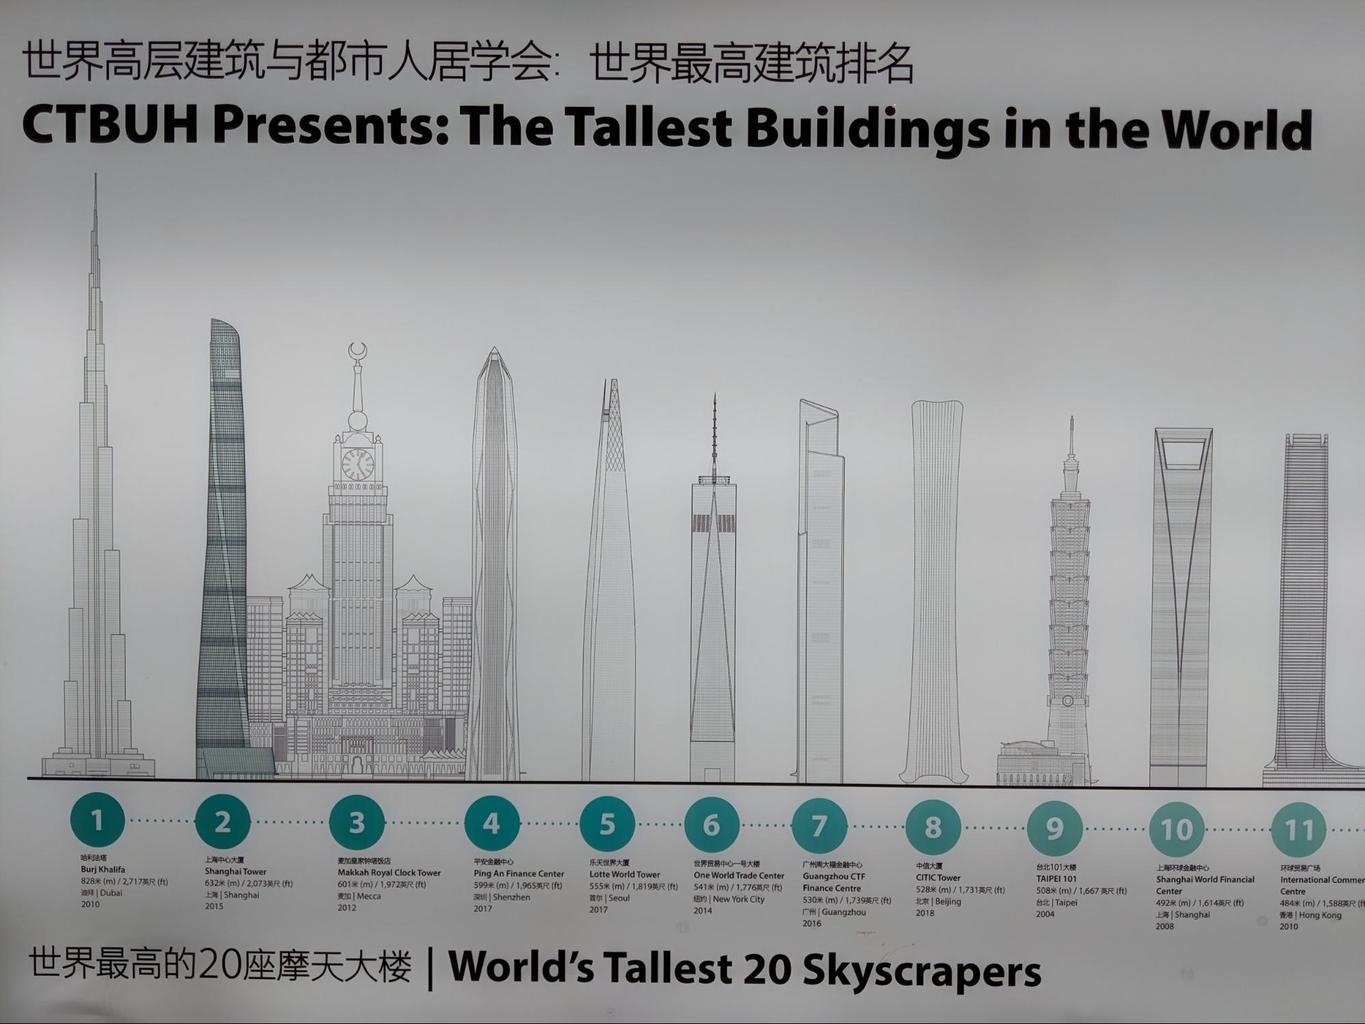 The world's tallest skyscrapers